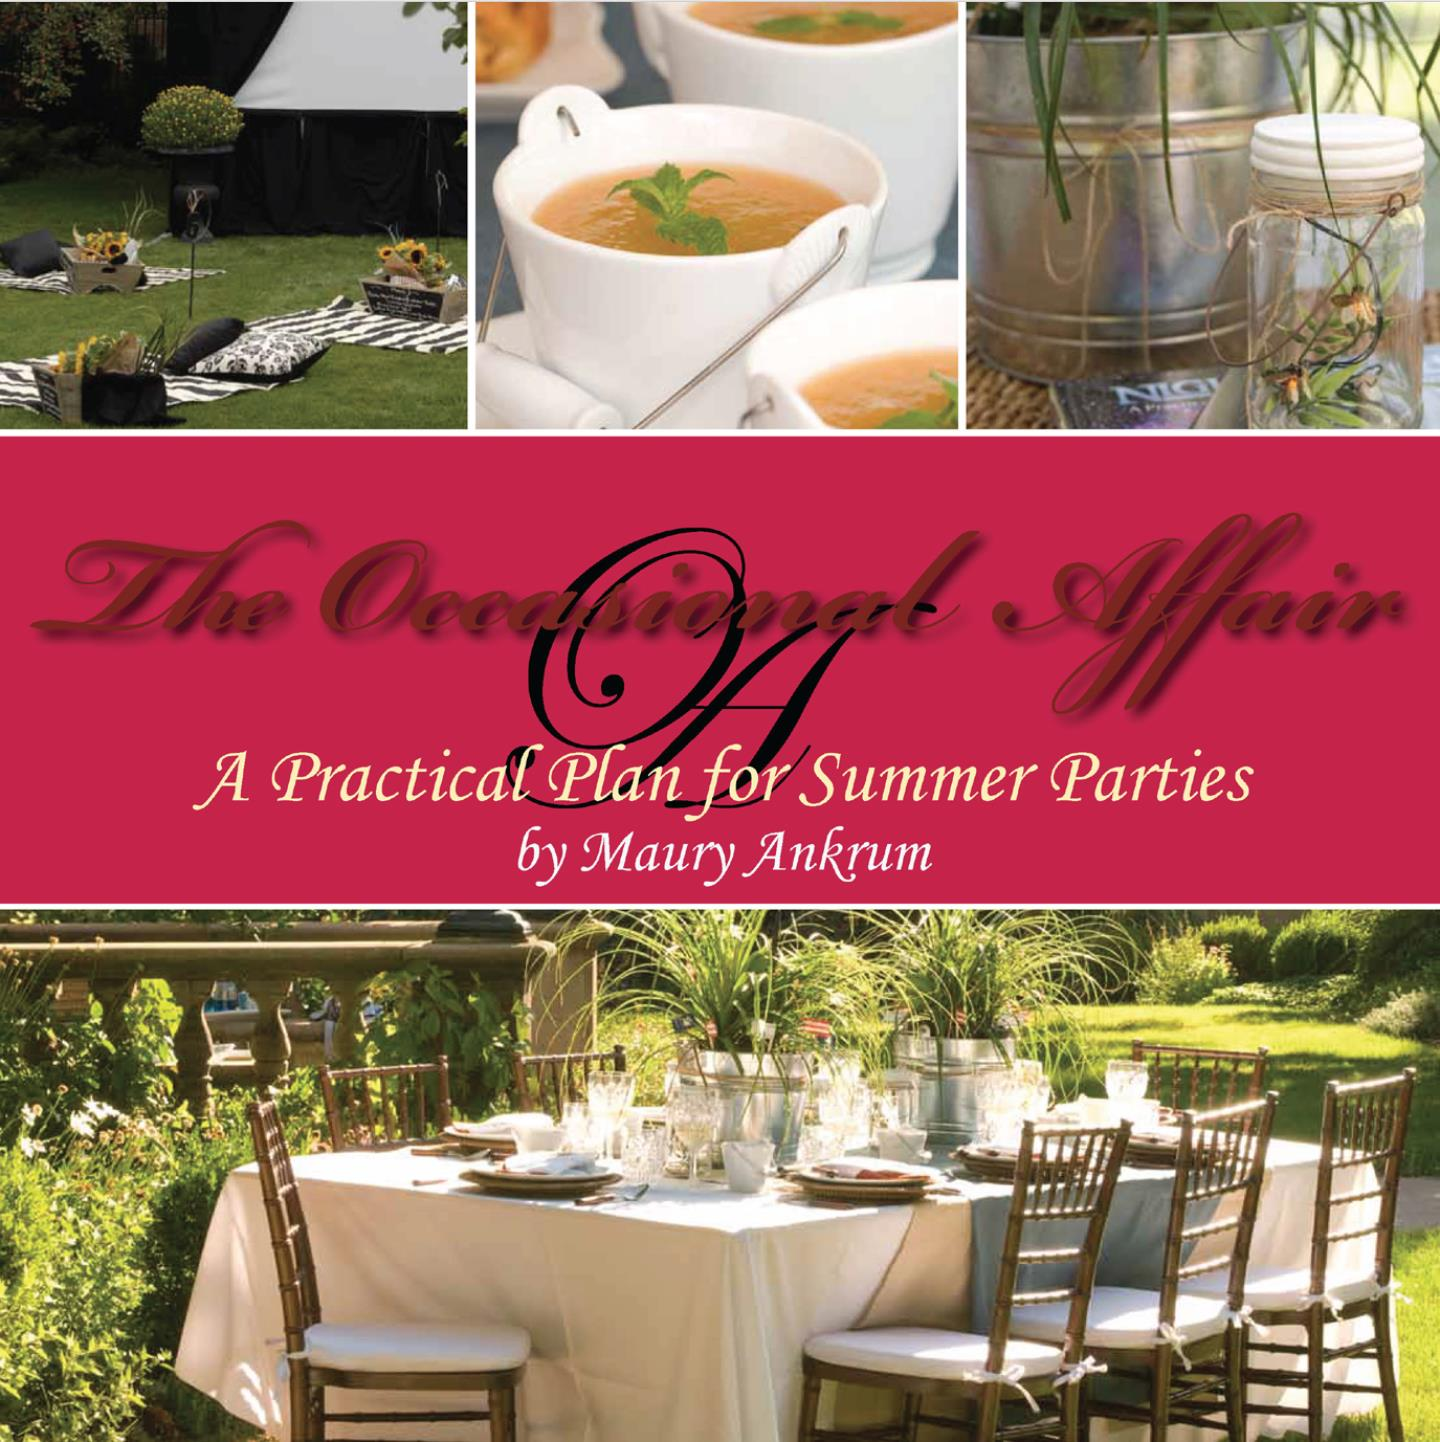 The Occasional Affair: A Practical Plan for Summer Parties